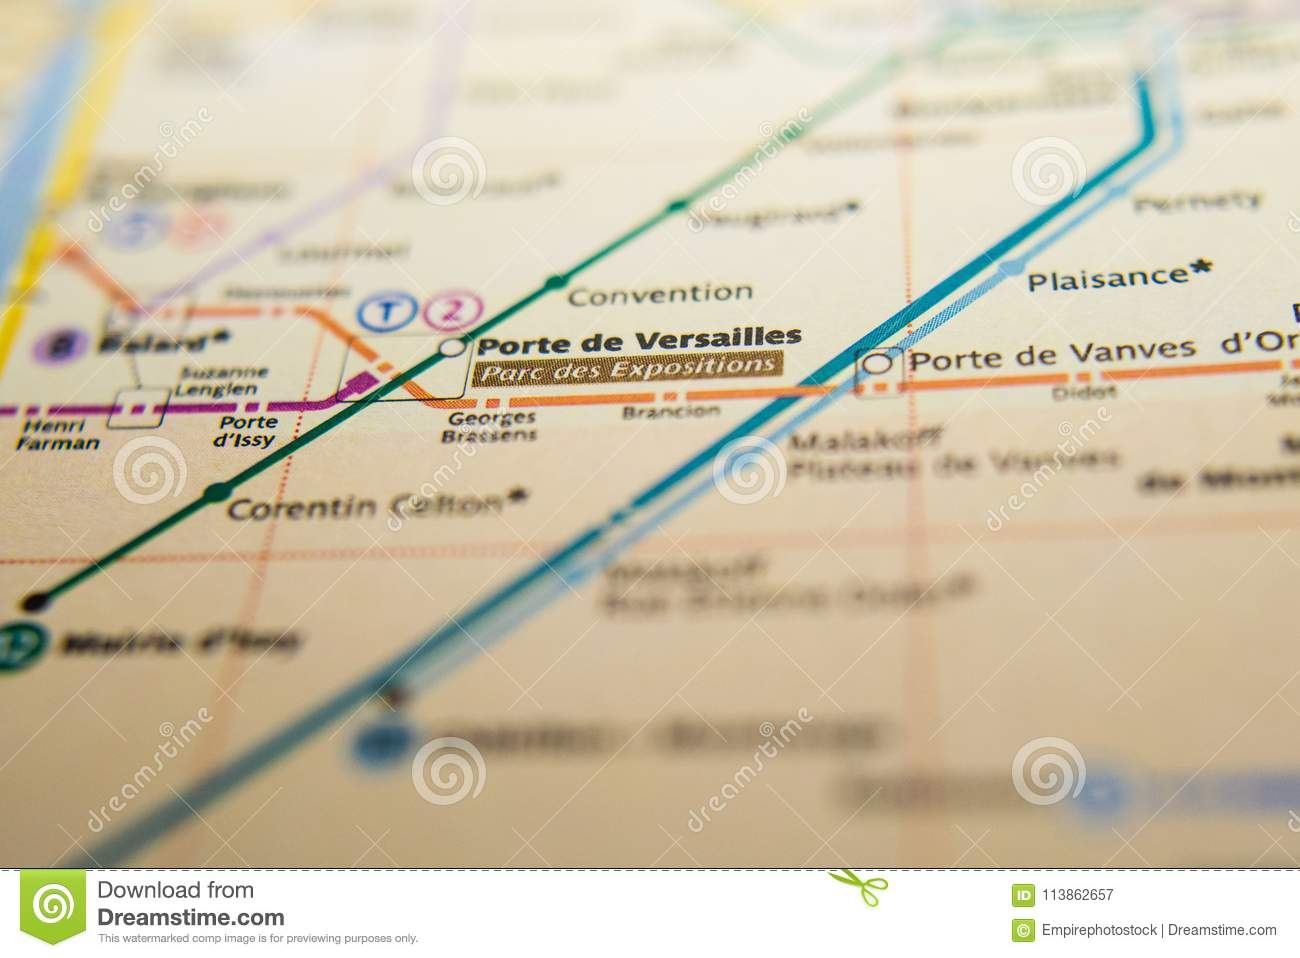 Paris Metro Map Download.Porte De Versailles Metro Station On A Printed Paris Metro Map Under